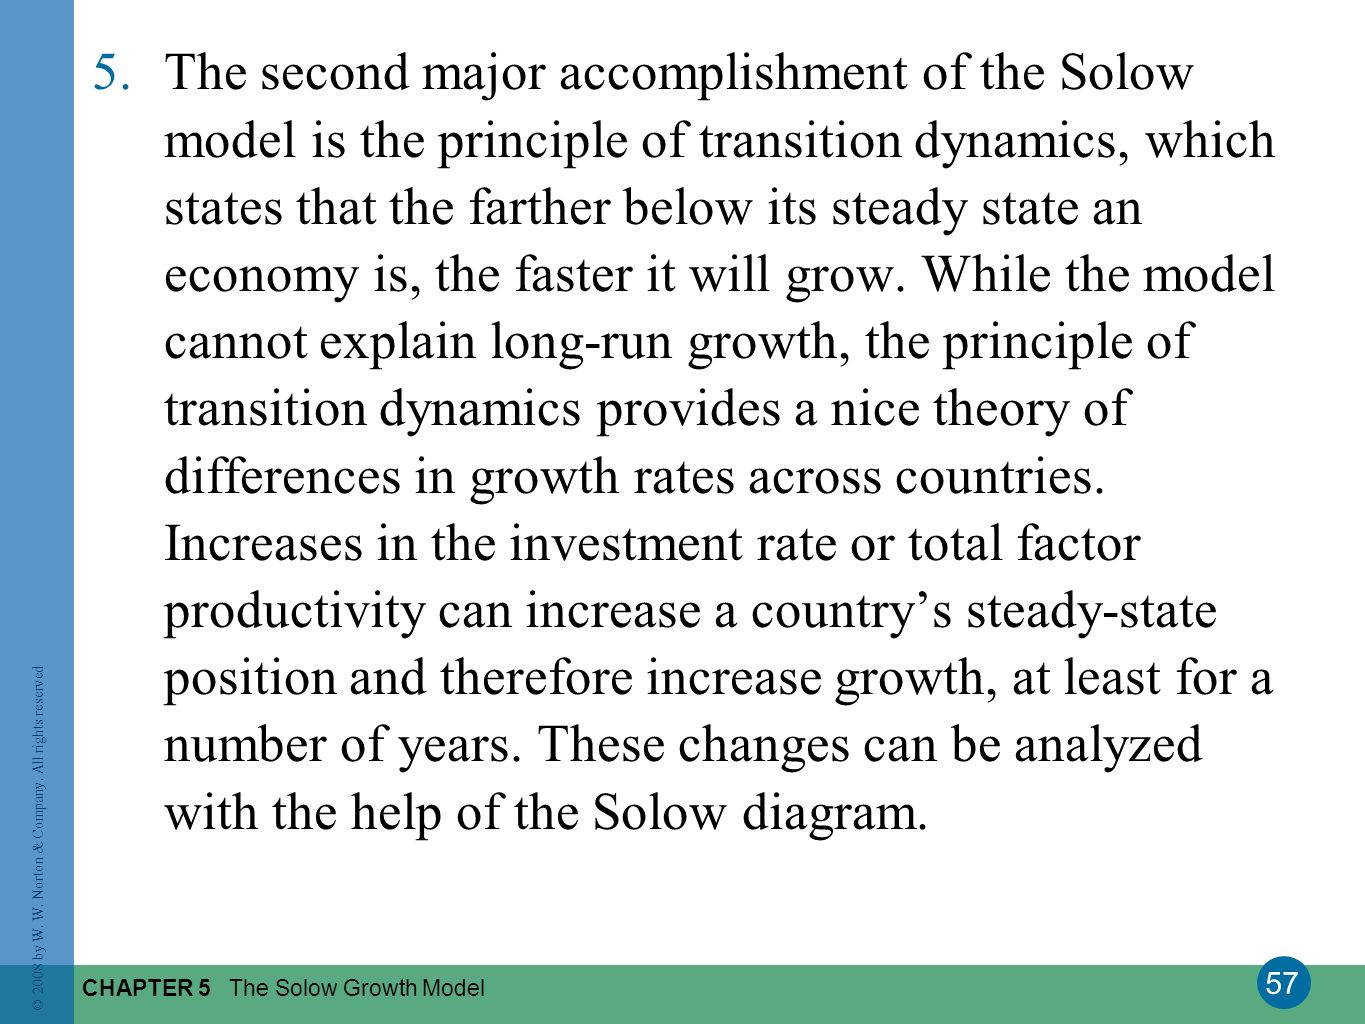 The second major accomplishment of the Solow model is the principle of transition dynamics, which states that the farther below its steady state an economy is, the faster it will grow. While the model cannot explain long-run growth, the principle of transition dynamics provides a nice theory of differences in growth rates across countries. Increases in the investment rate or total factor productivity can increase a country's steady-state position and therefore increase growth, at least for a number of years. These changes can be analyzed with the help of the Solow diagram.